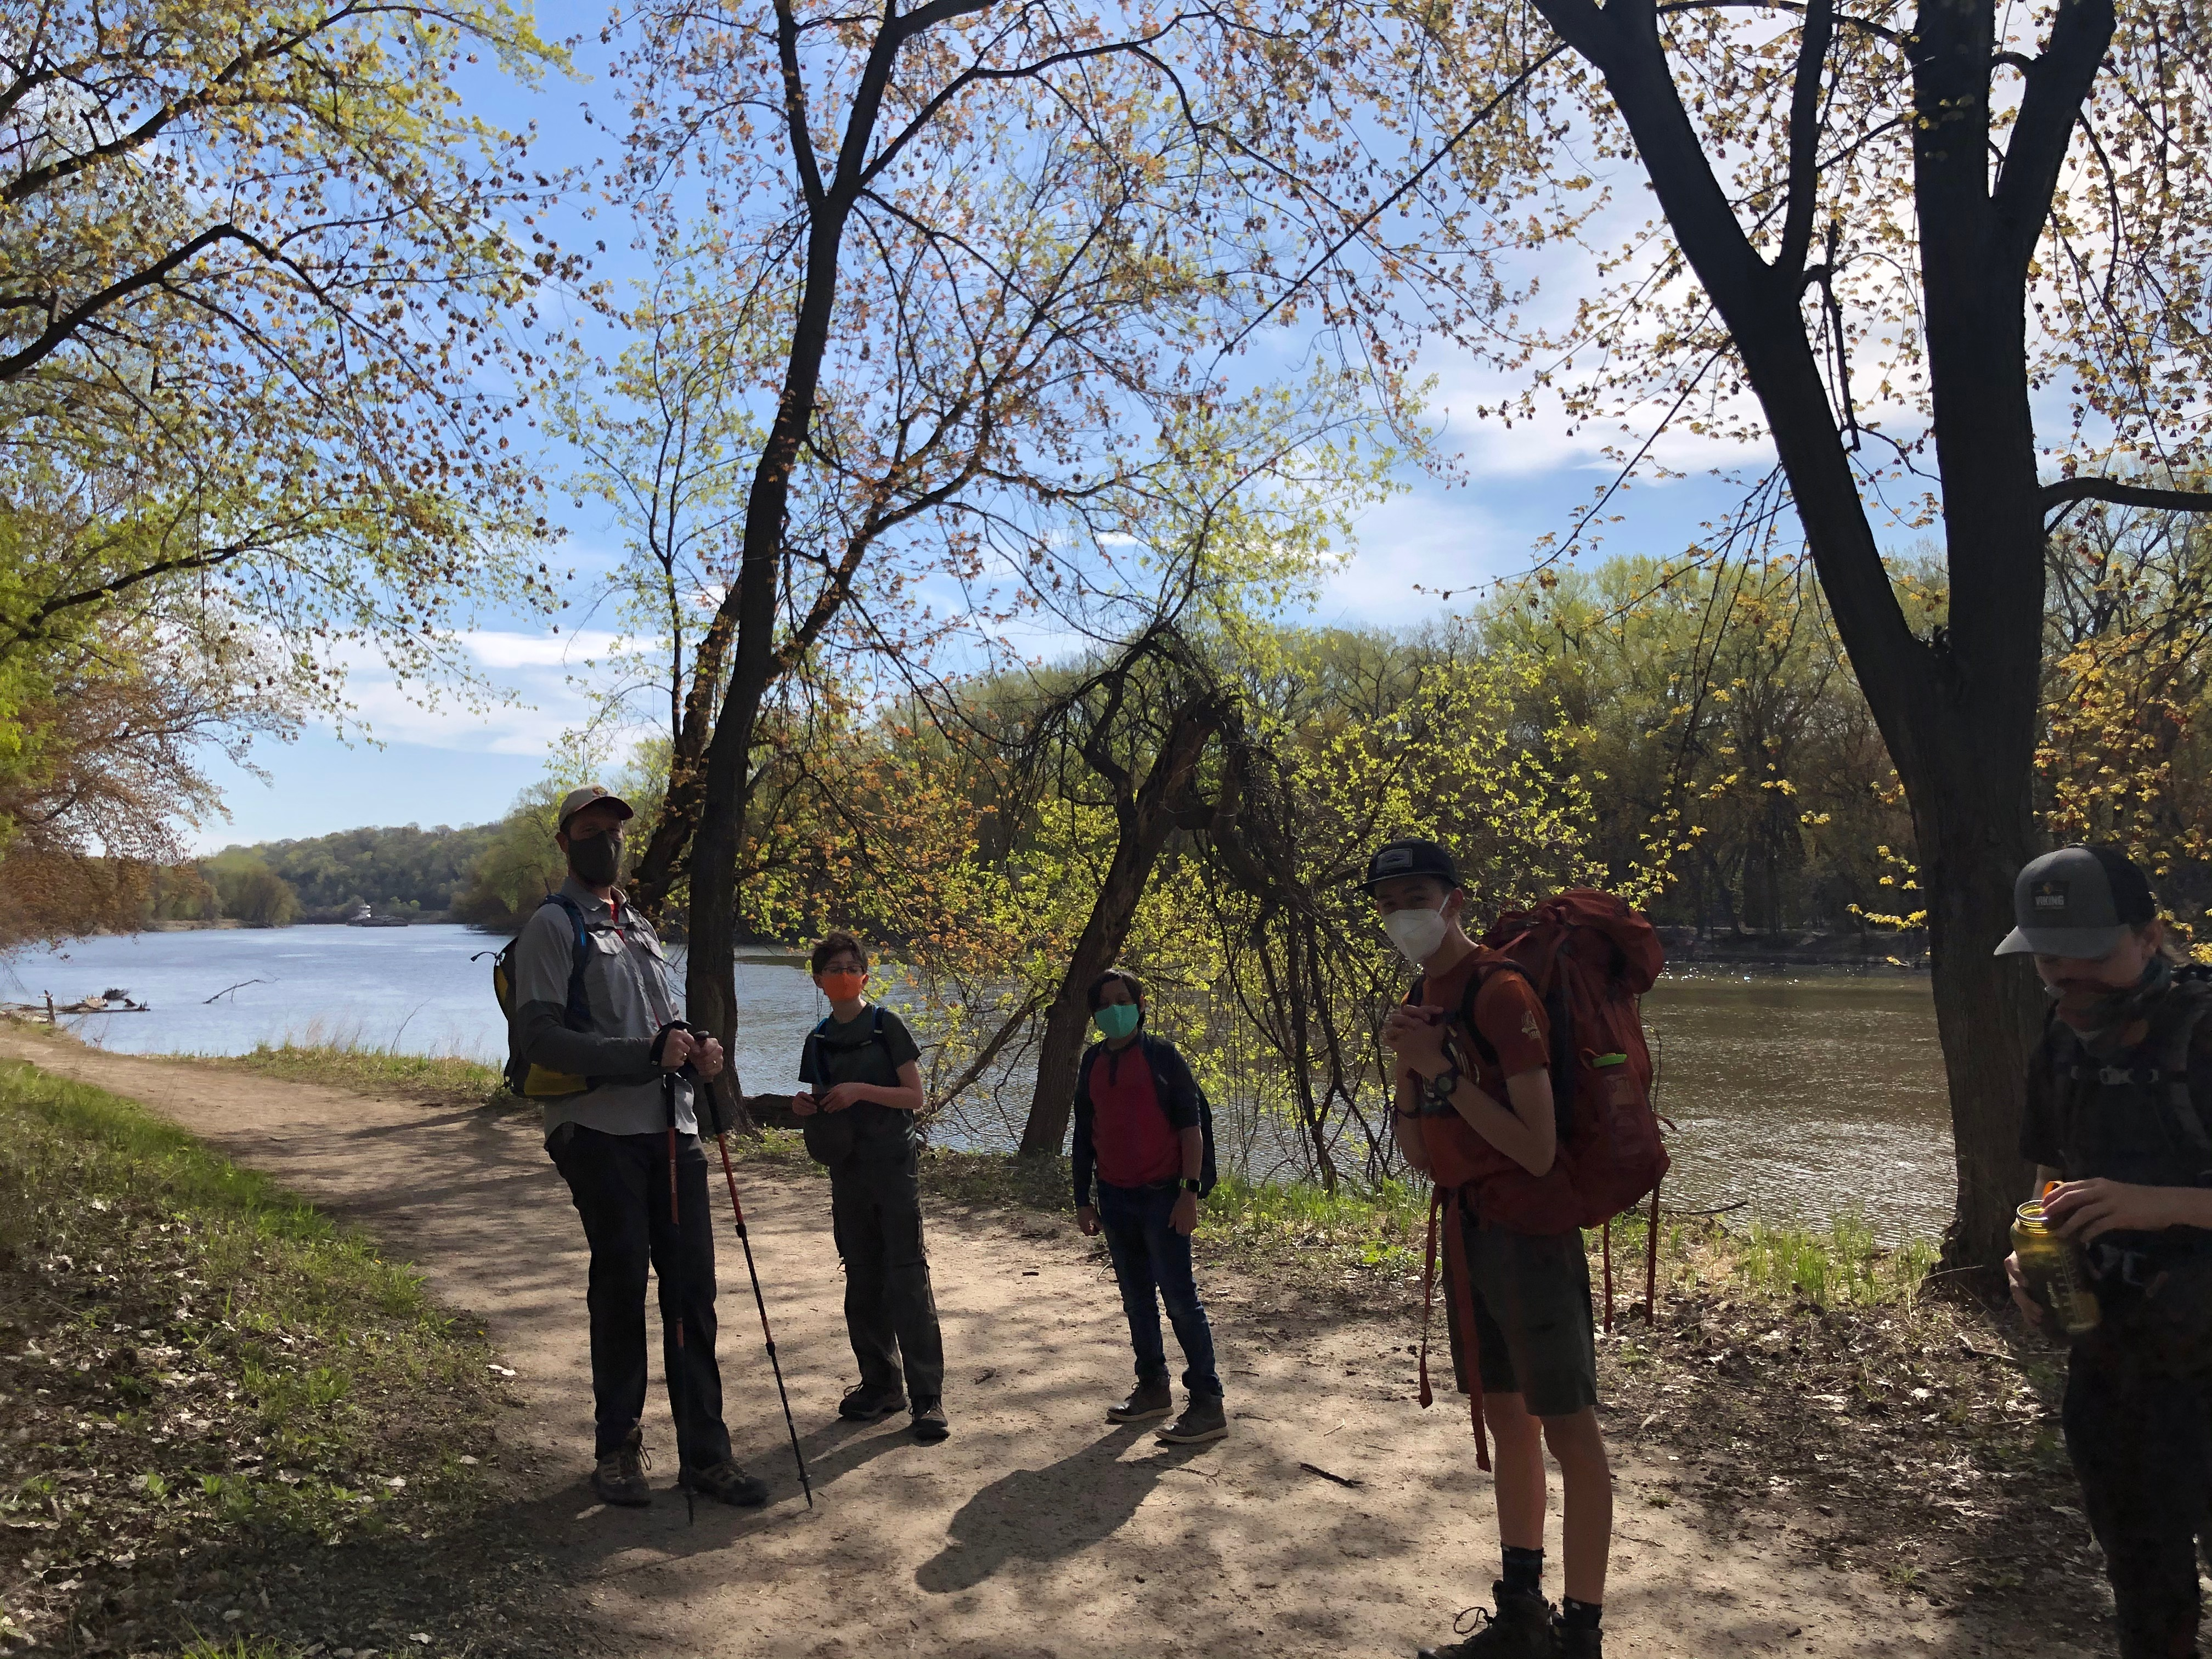 The images shows an adult hiker and four youth hikers, who are wearing masks and standing on a partially shaded trail running parallel to a river. One of the youth is wearing a large, red backpack.